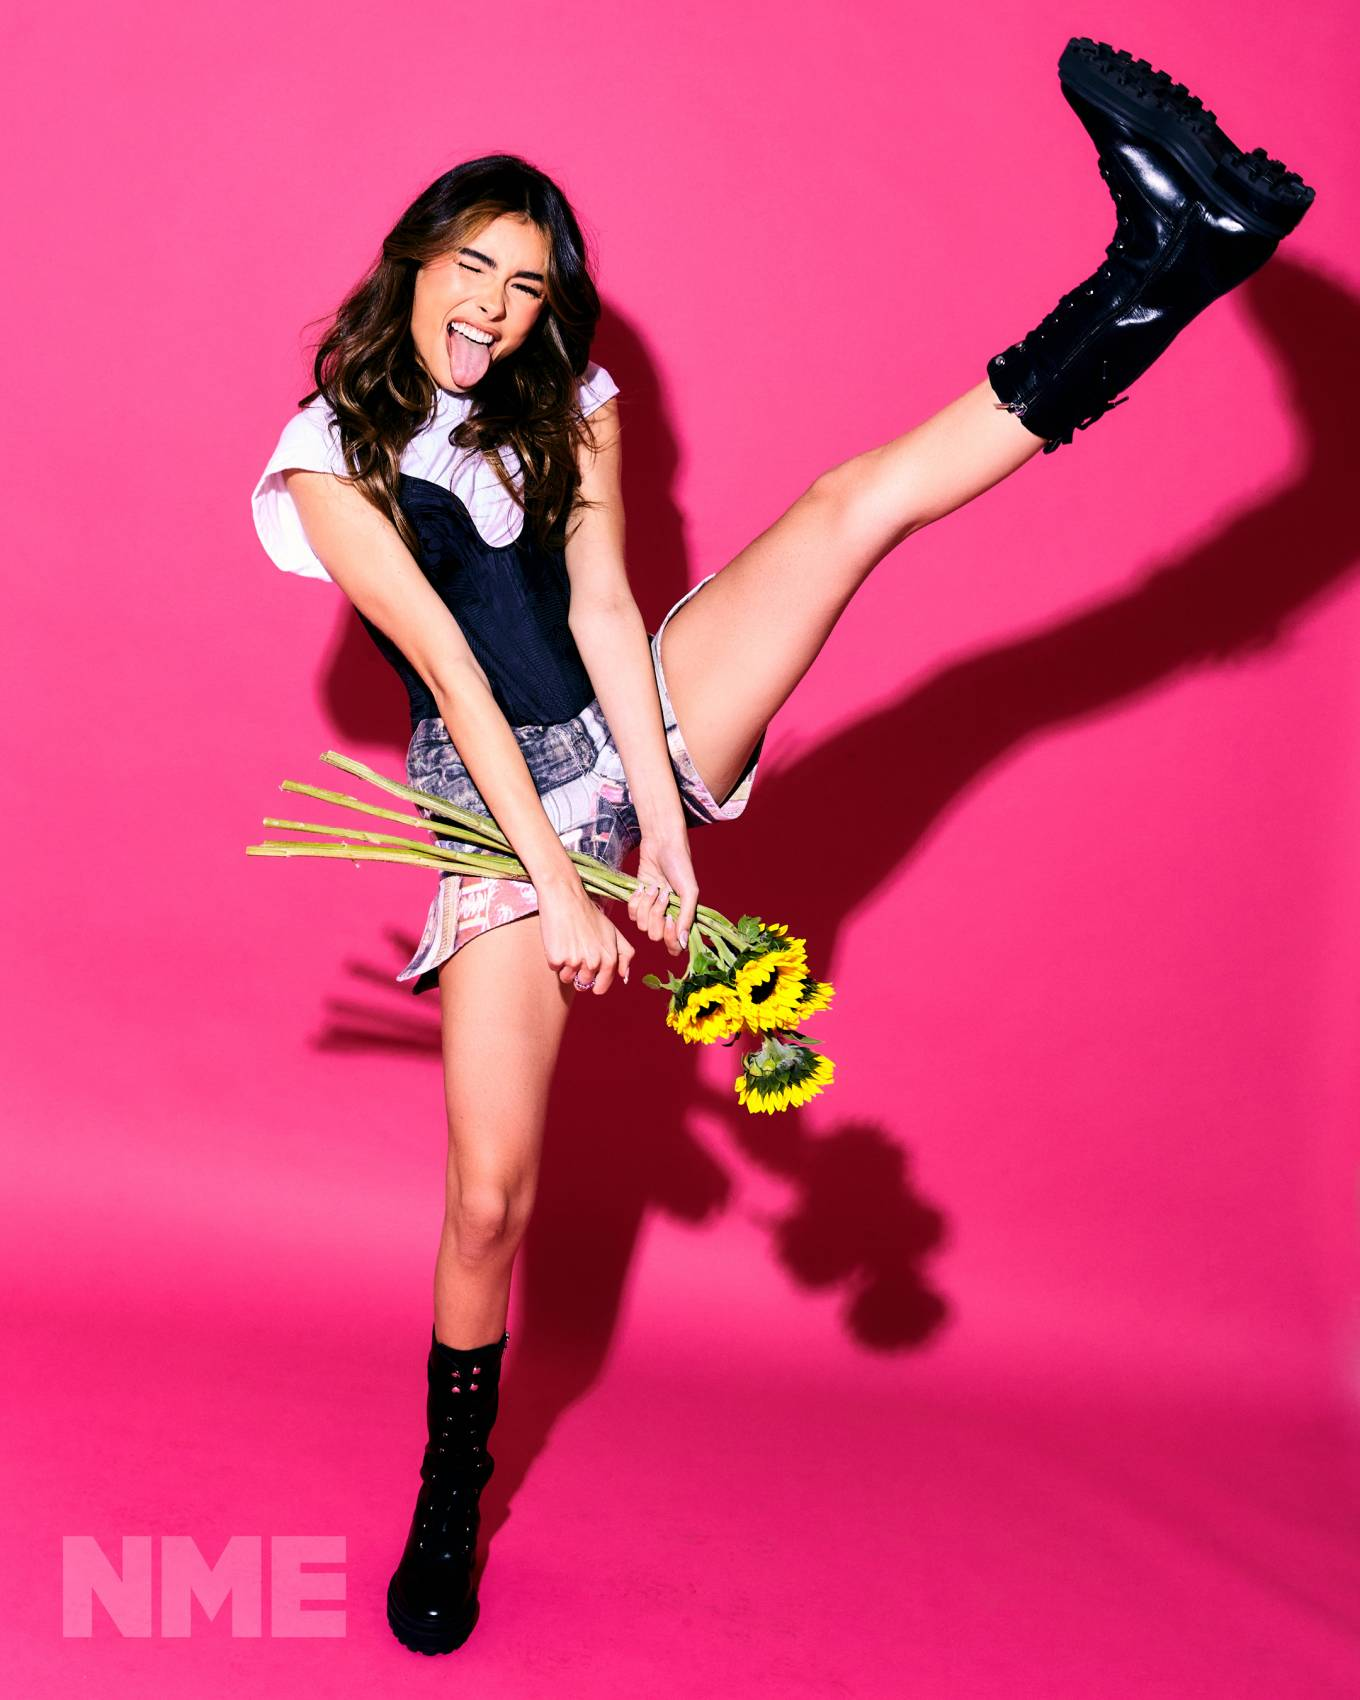 Madison Beer - NME February 2021